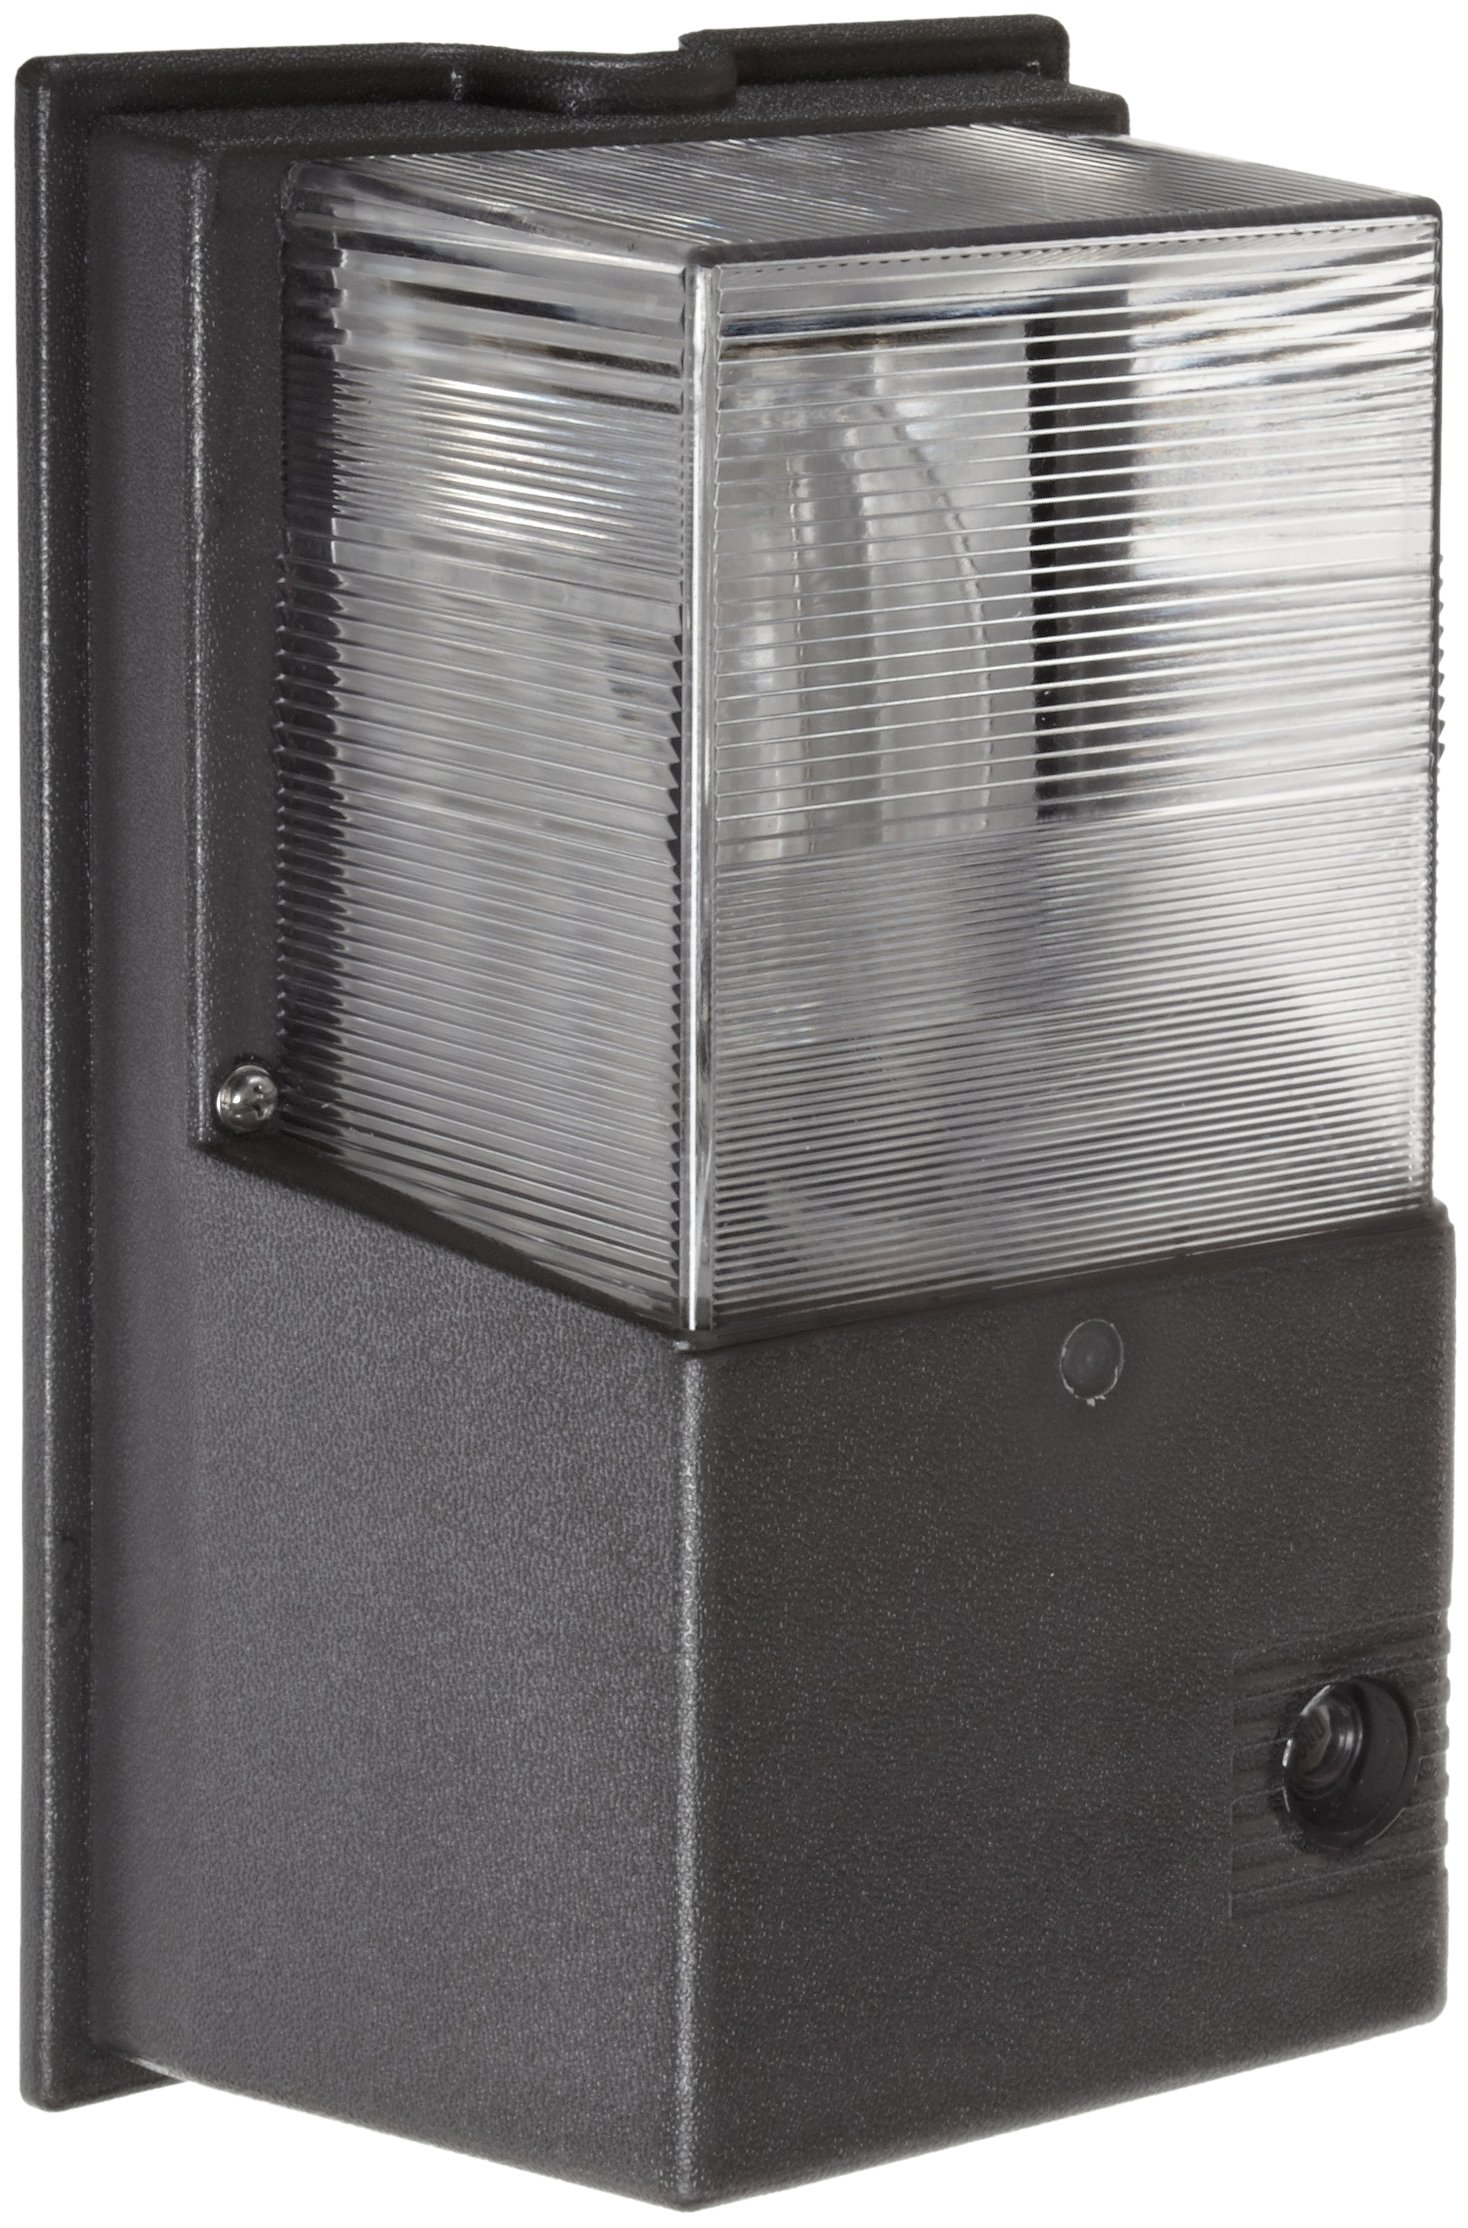 Morris Products 71012 Mini Wall Packs, HPS Type, Medium Lamp Base, 70 Watts, 120V Volts by Morris Products